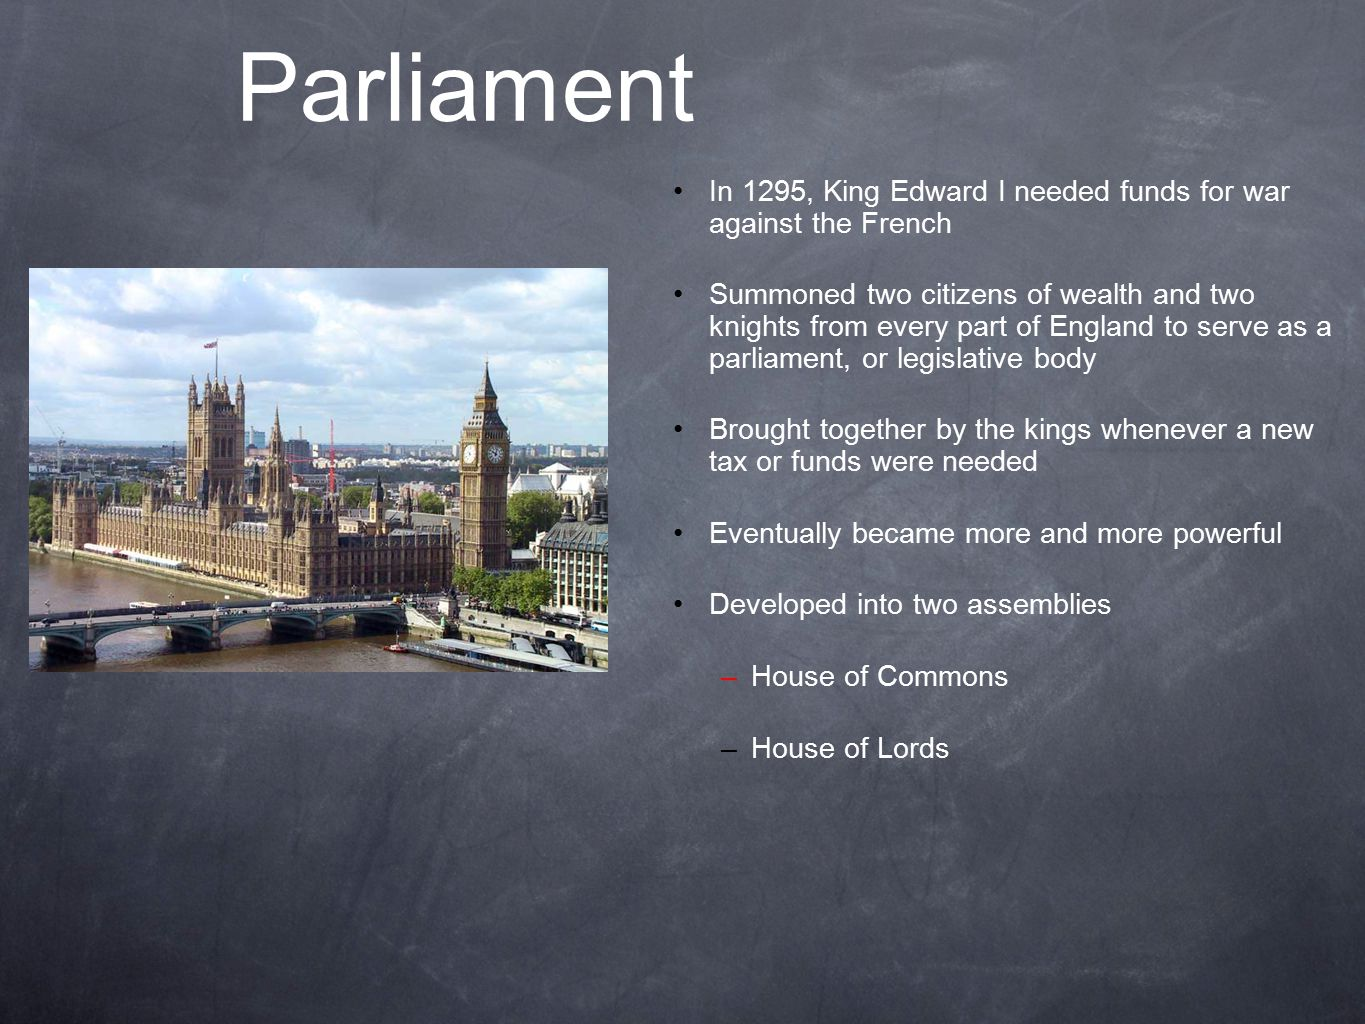 Parliament In 1295, King Edward I needed funds for war against the French.